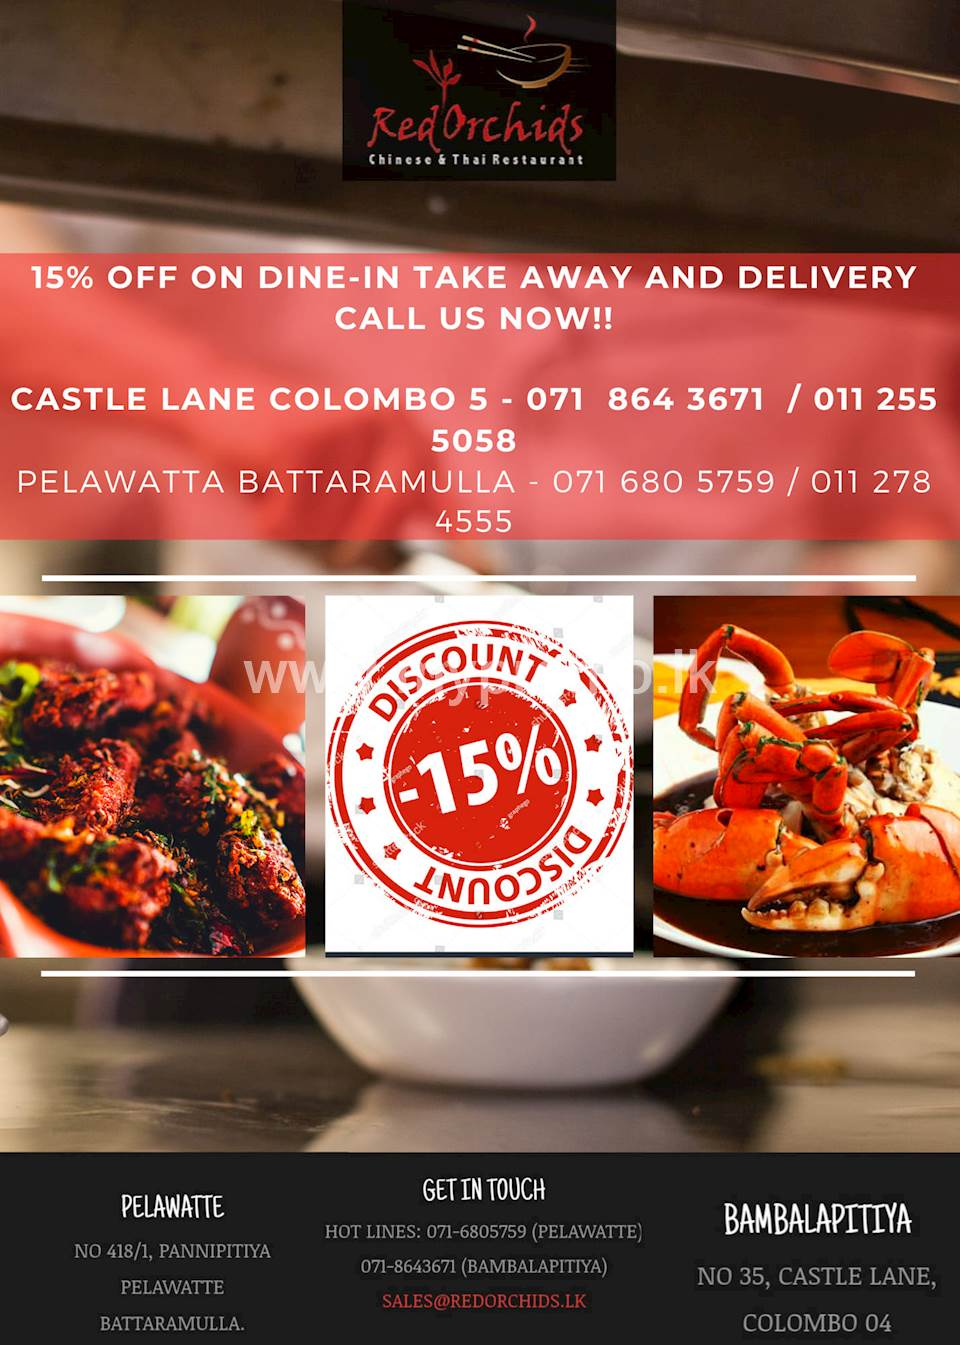 15% Discount on your bill when you dine or takeaway at Red Orchids restaurant